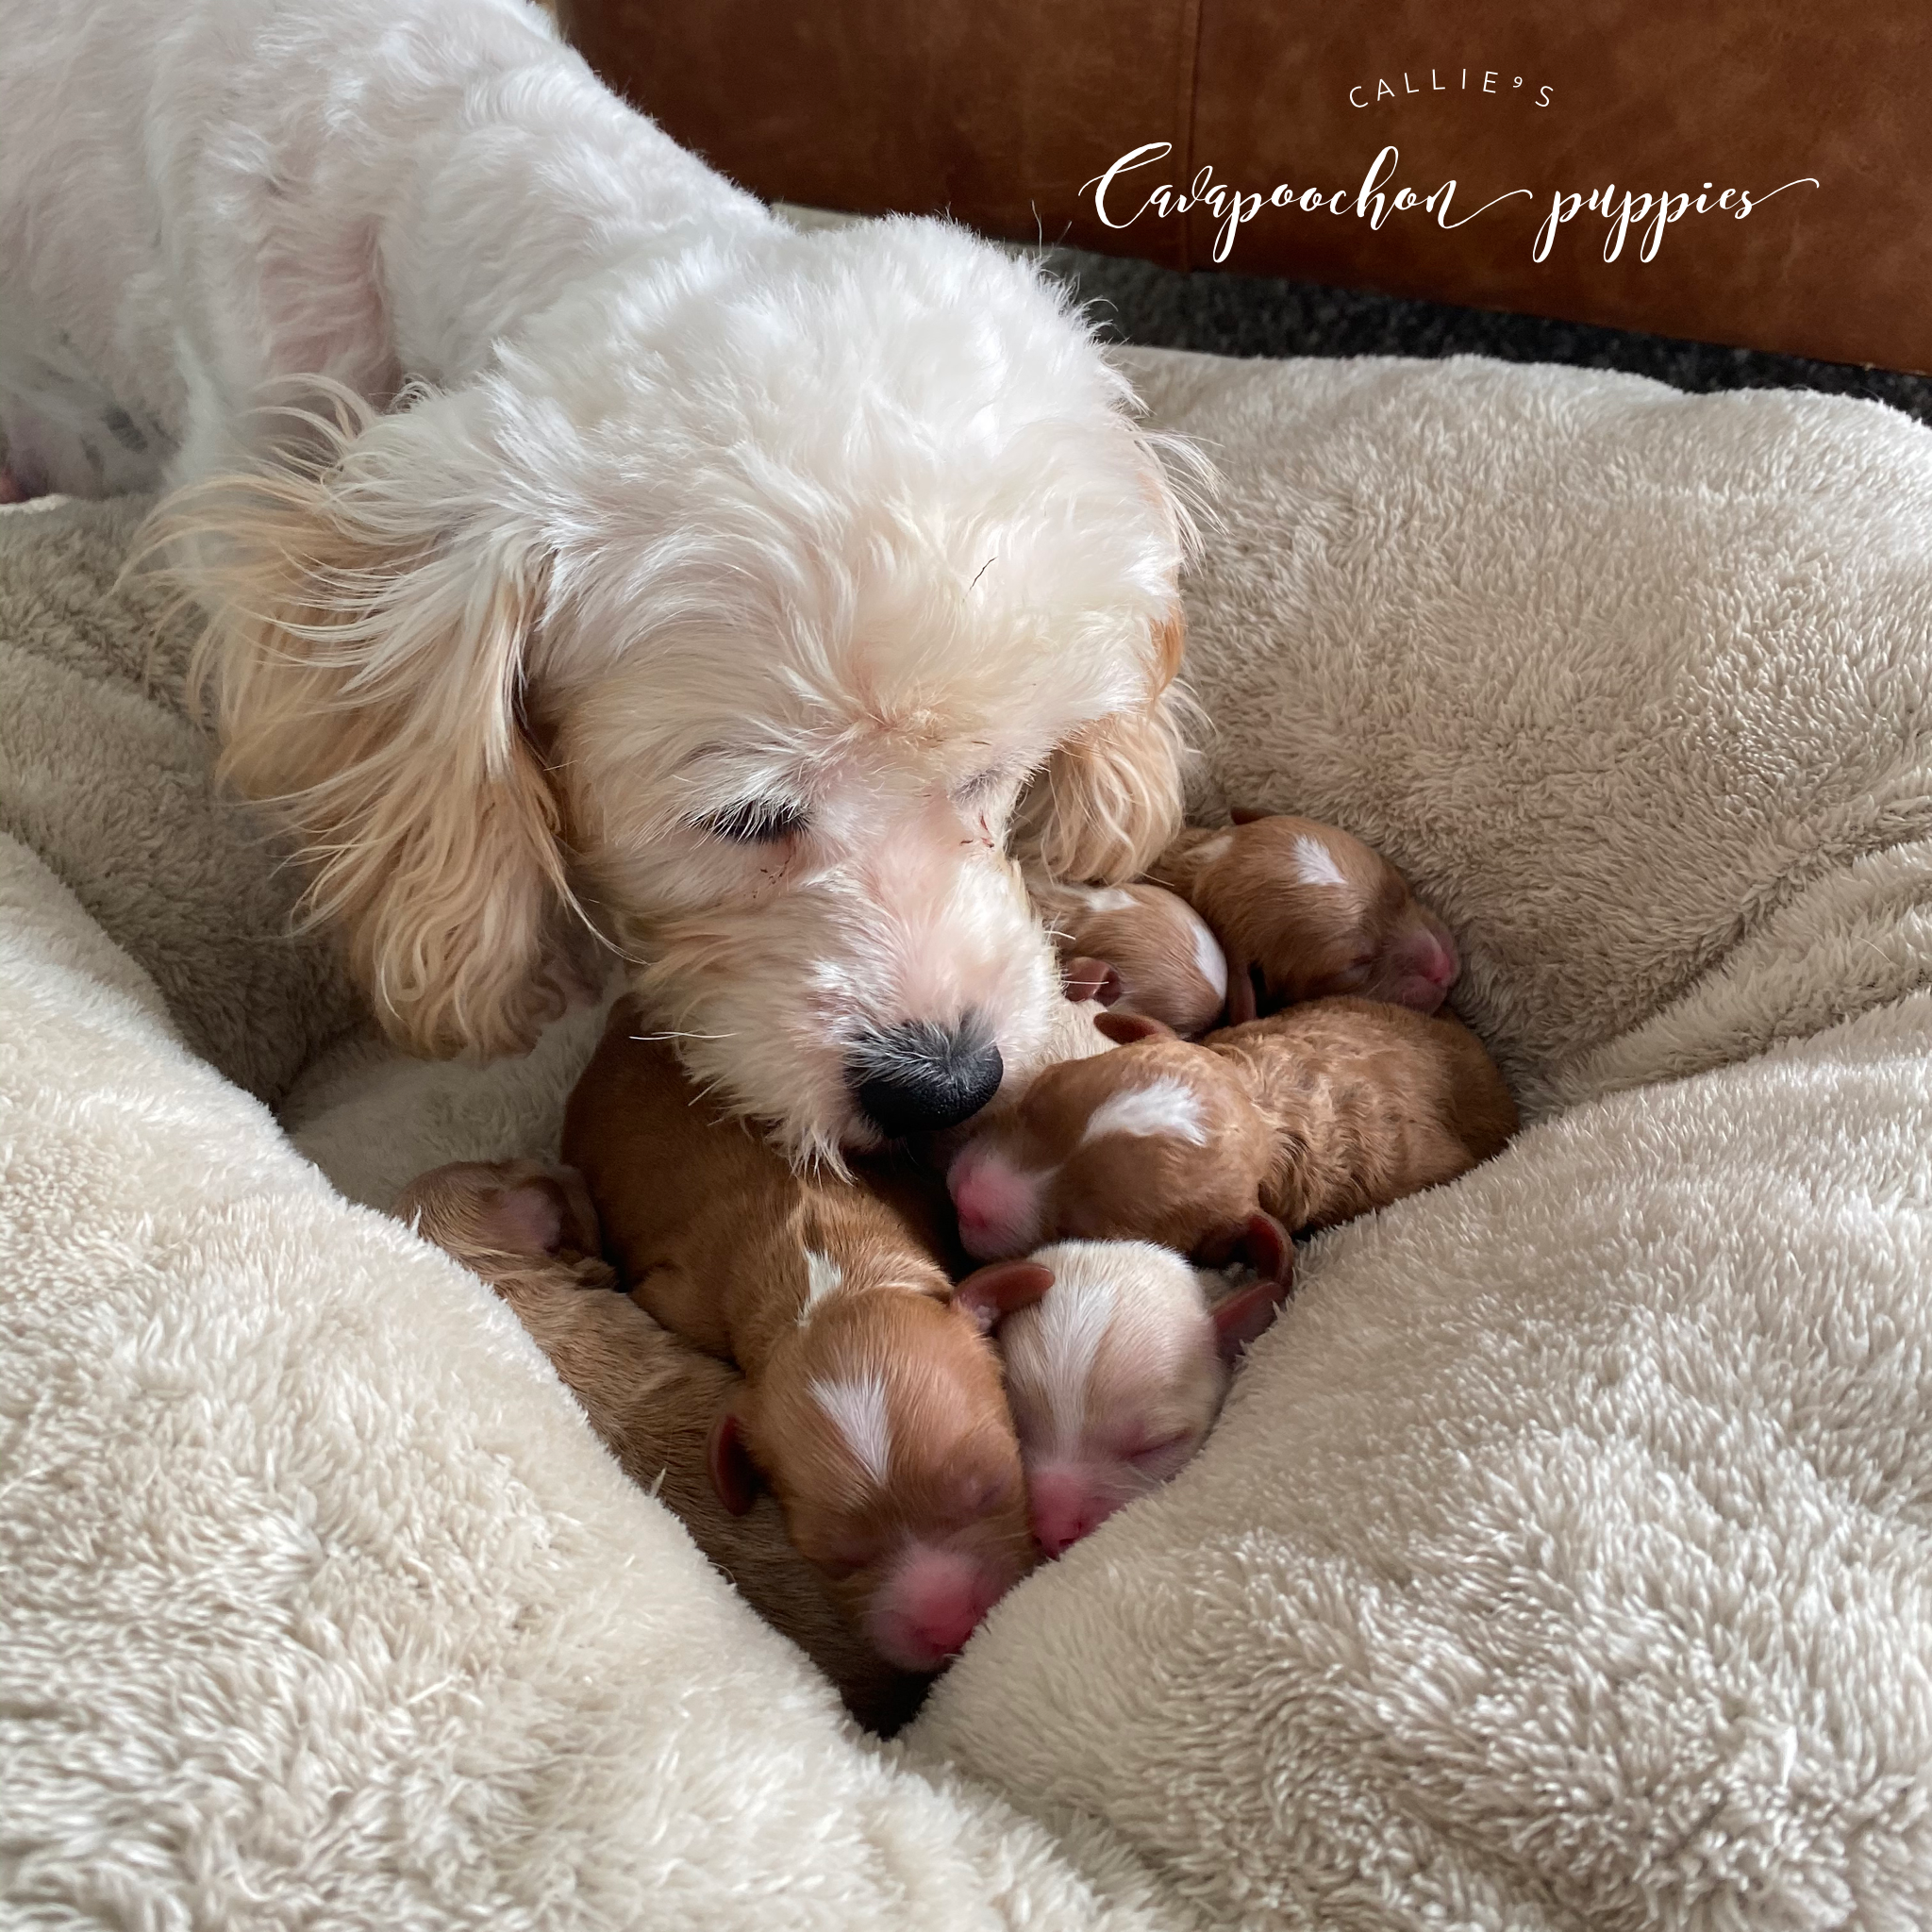 Callie with her sweet one day old puppies